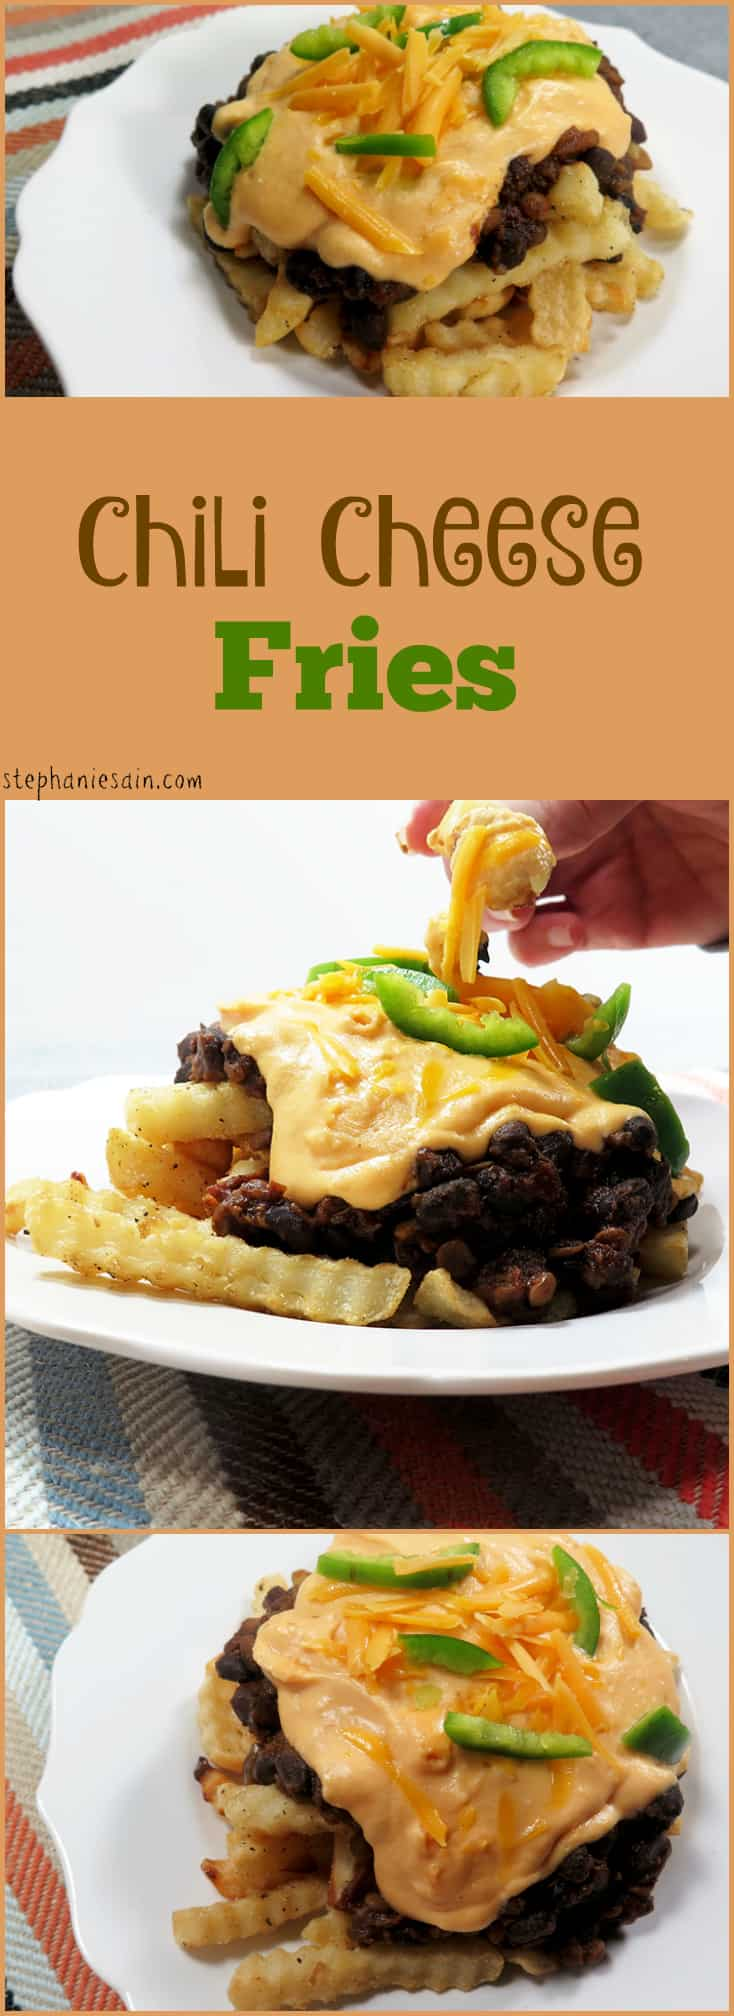 Chili Cheese Fries are a quick, tasty dinner to throw together when you're short on time. Vegetarian and Gluten Free.